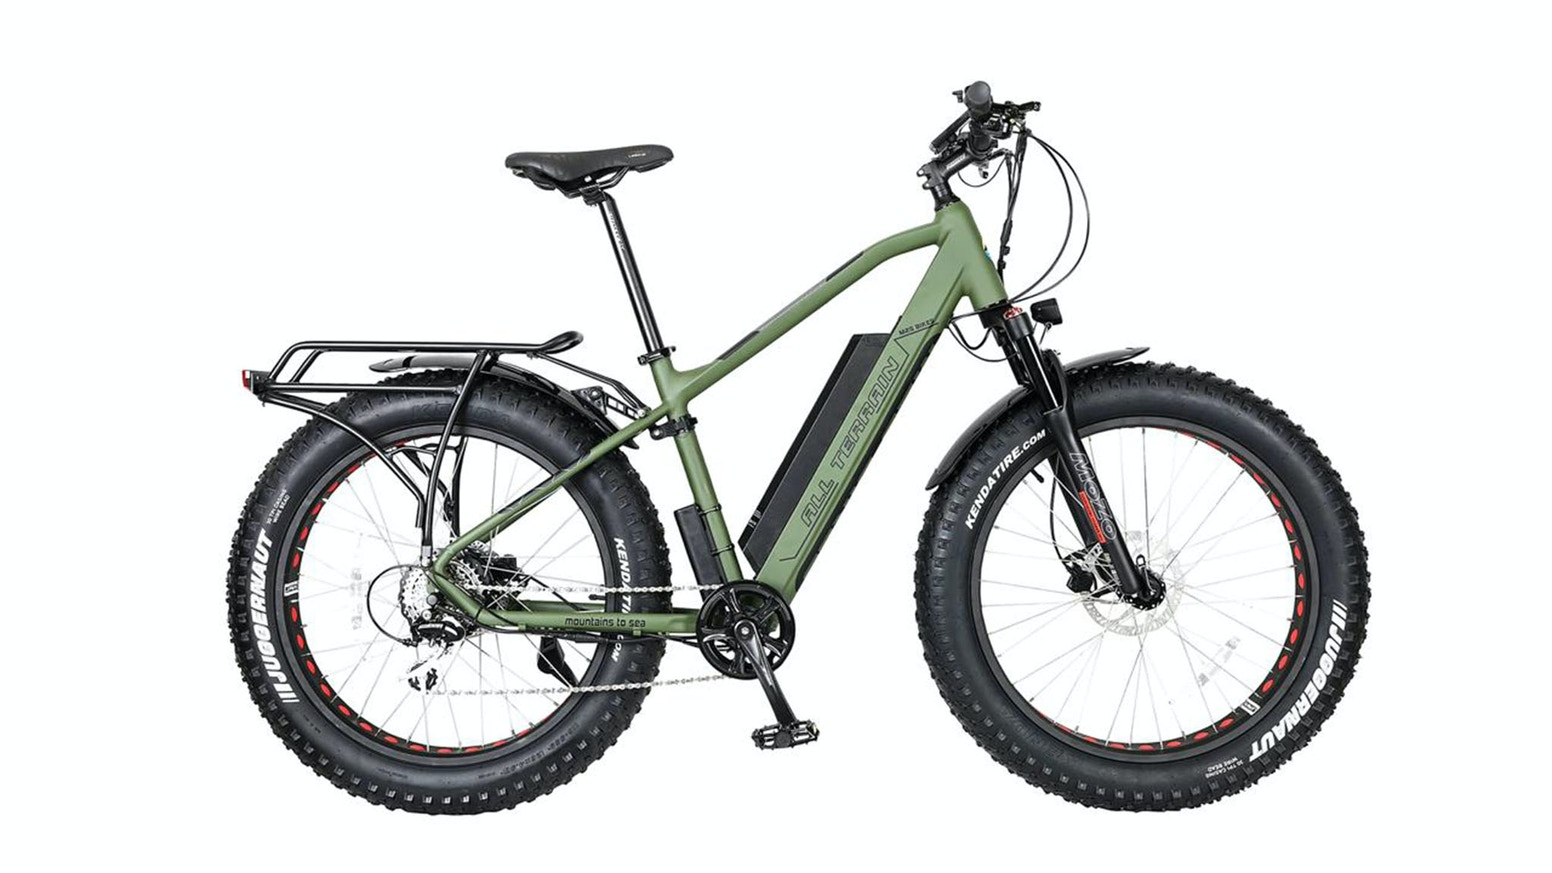 The new and improved All Terrain R750 electric assist bike gives riders the power to explore their world.